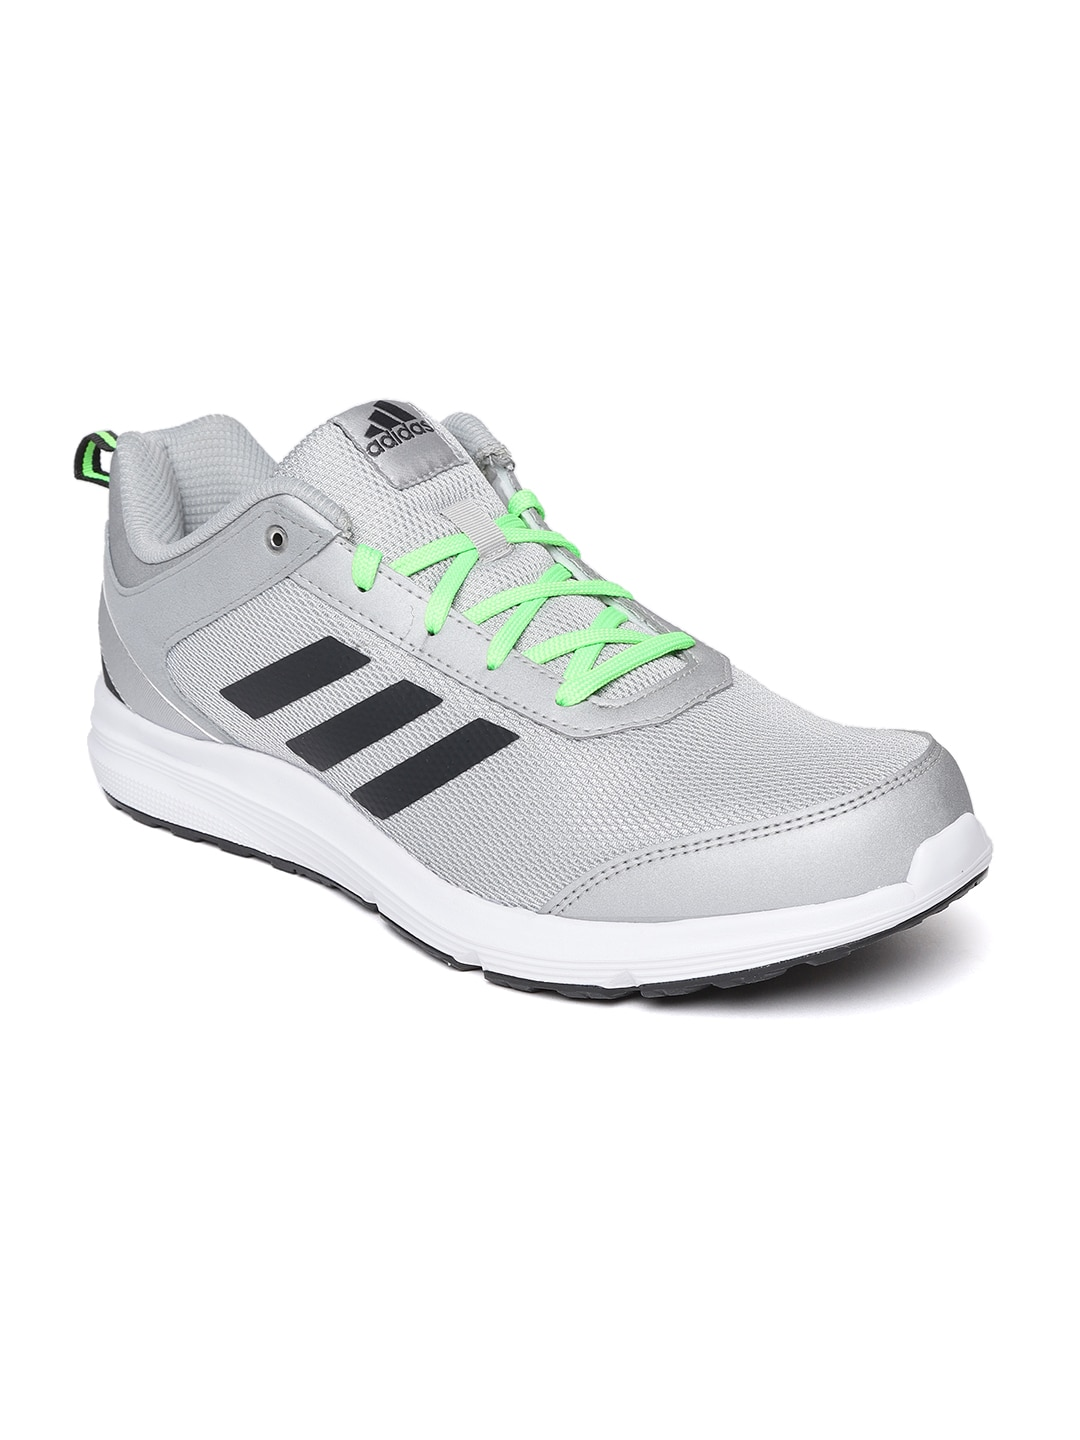 4dc9f521ccae Adidas Sports Sandals Wristbands Tracksuits Shoes - Buy Adidas Sports  Sandals Wristbands Tracksuits Shoes online in India